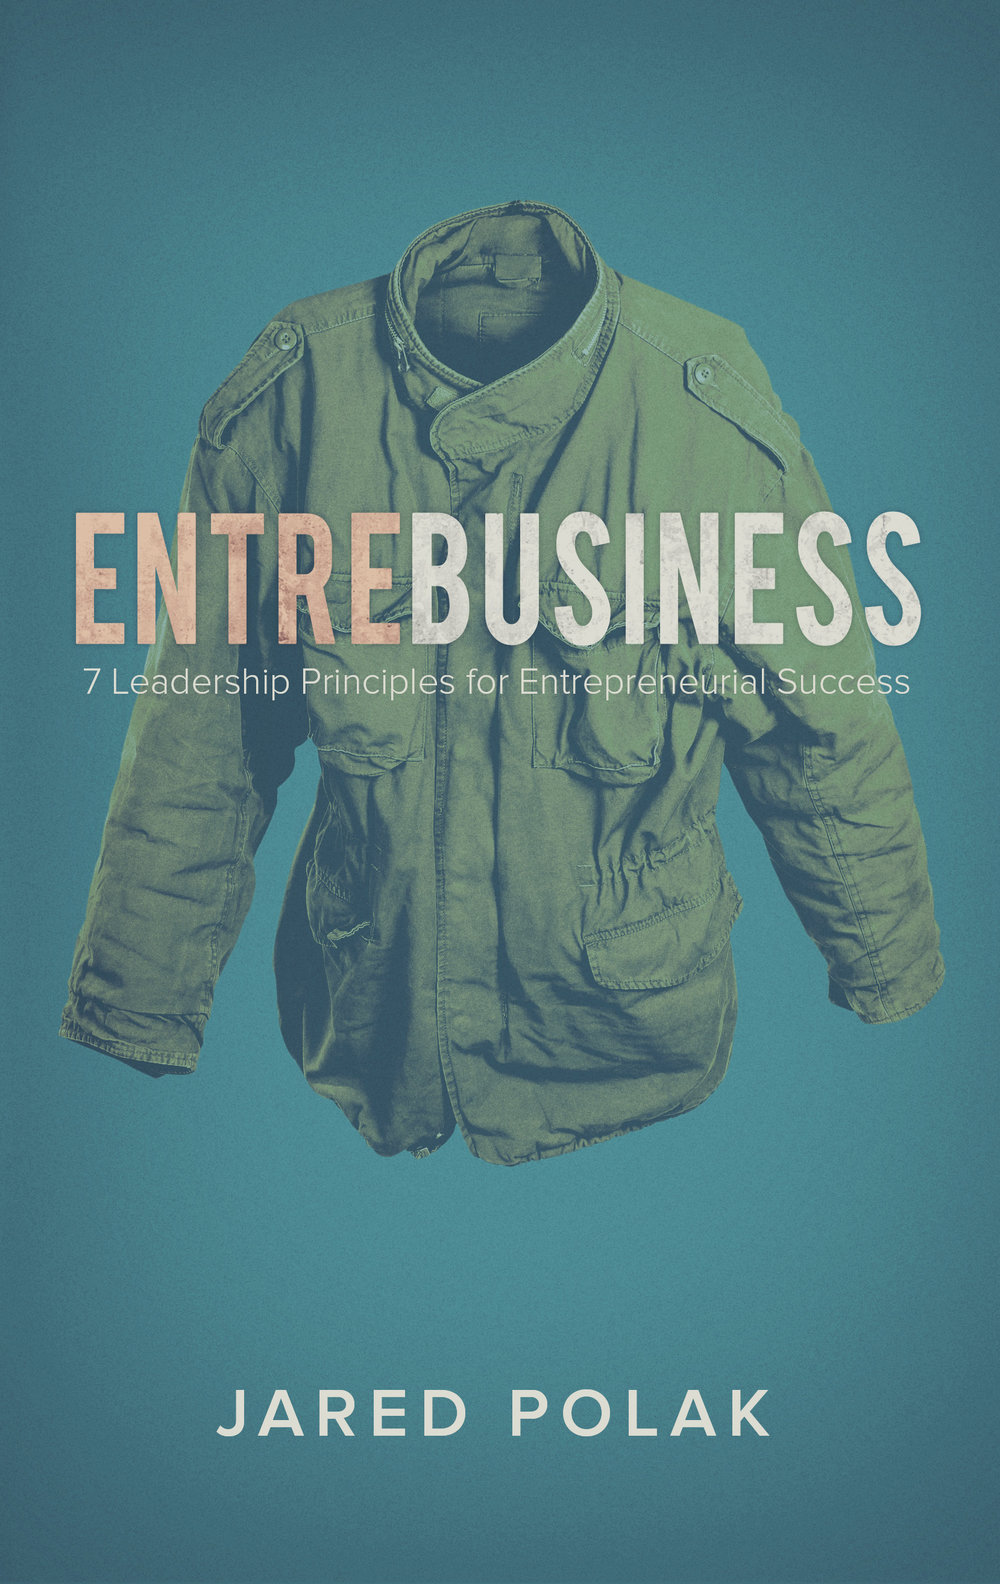 EntreBuisness -Template Fit 01 b.jpg